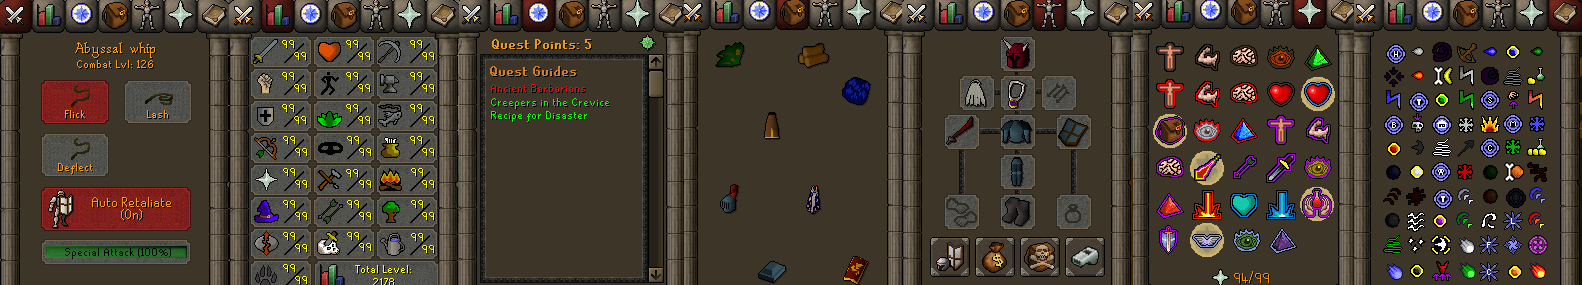 runerealm-interfaces-top.png